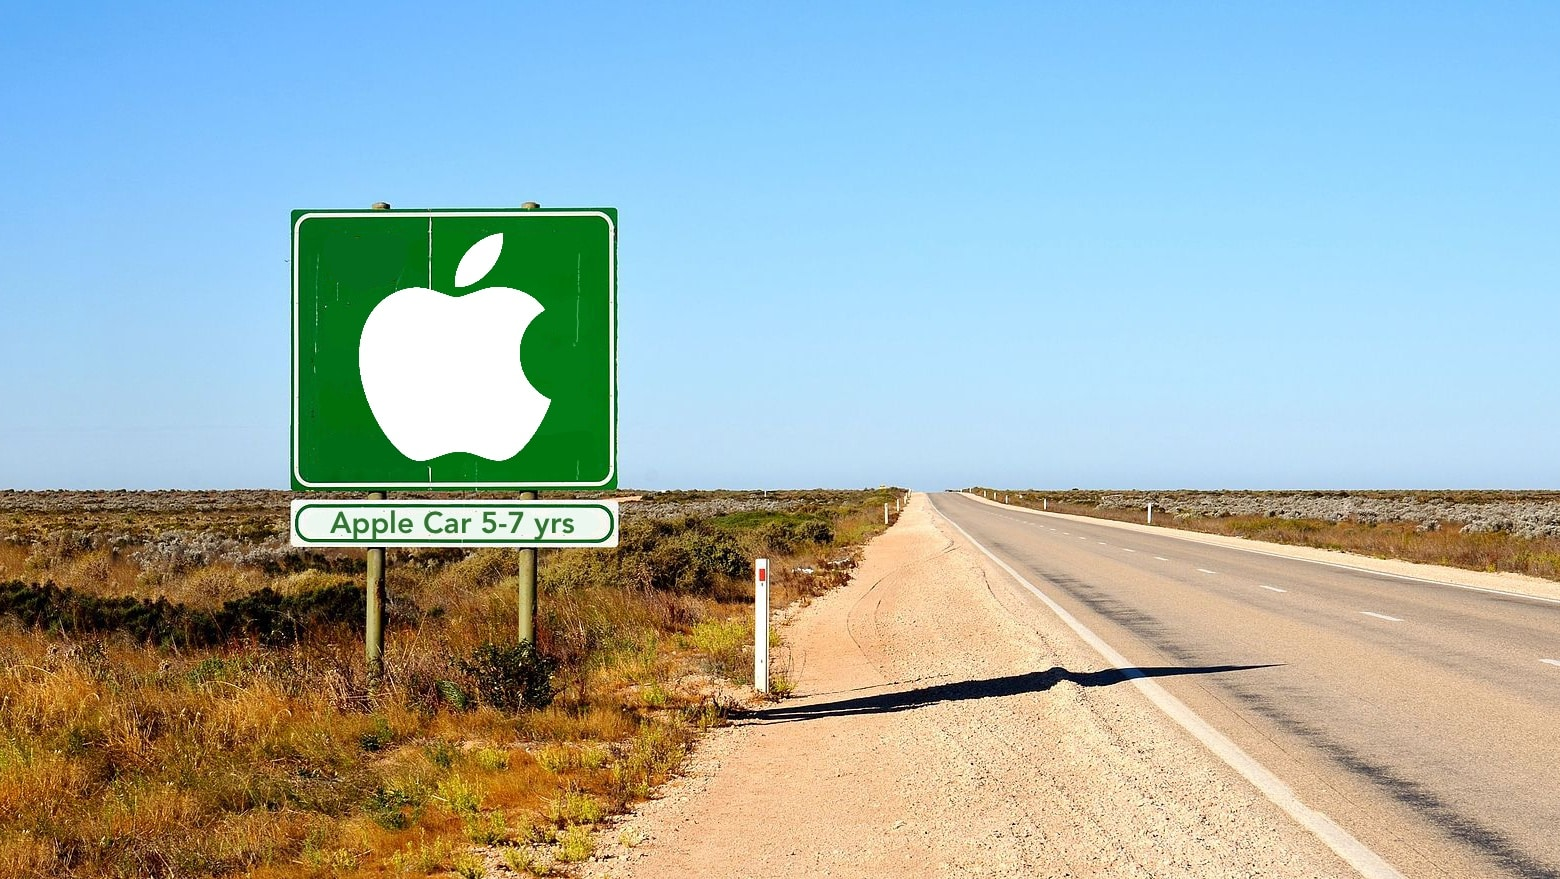 Apple keeps staffing up to make an Apple Car